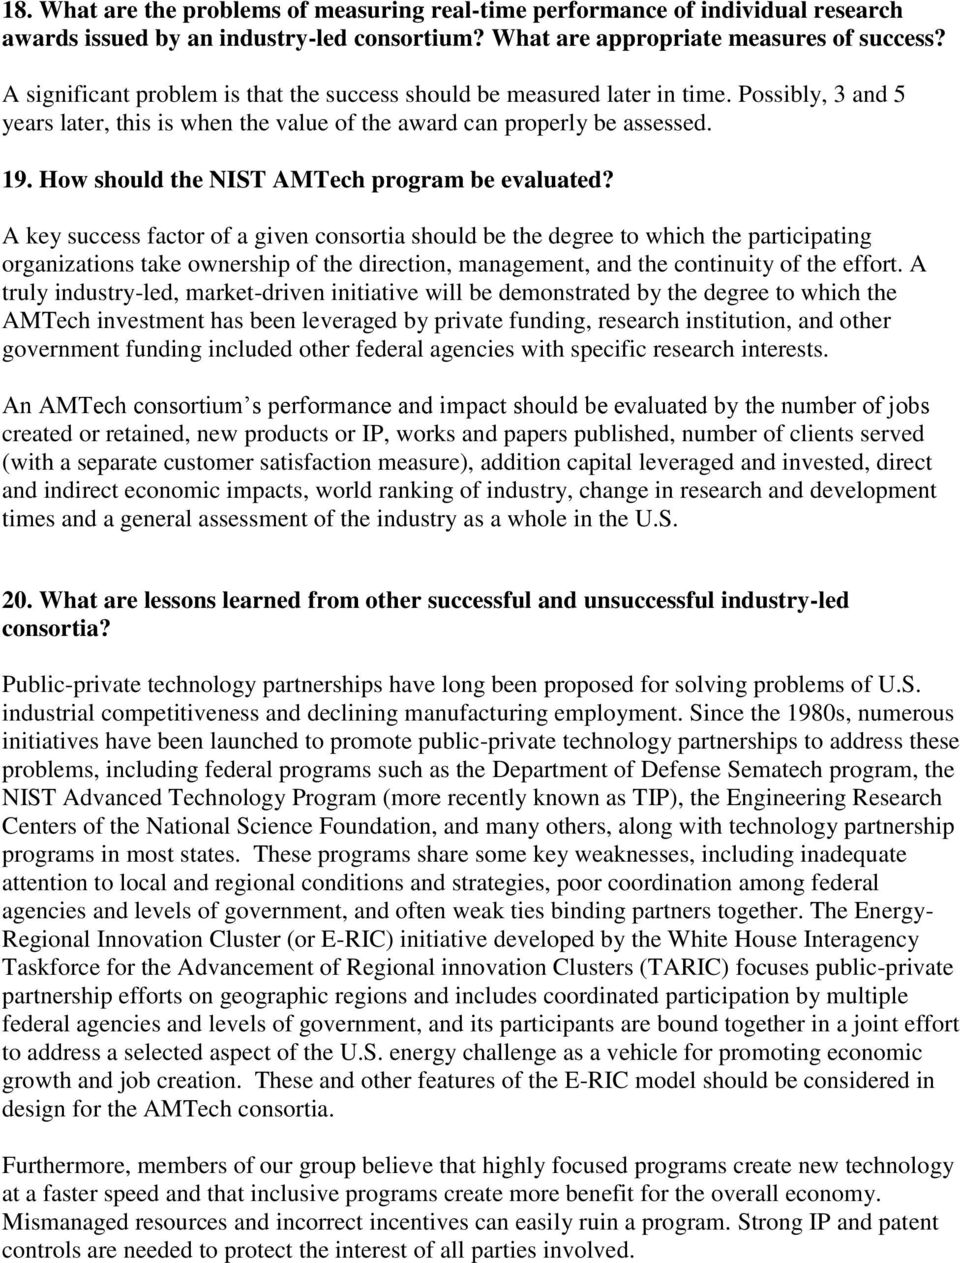 How should the NIST AMTech program be evaluated?